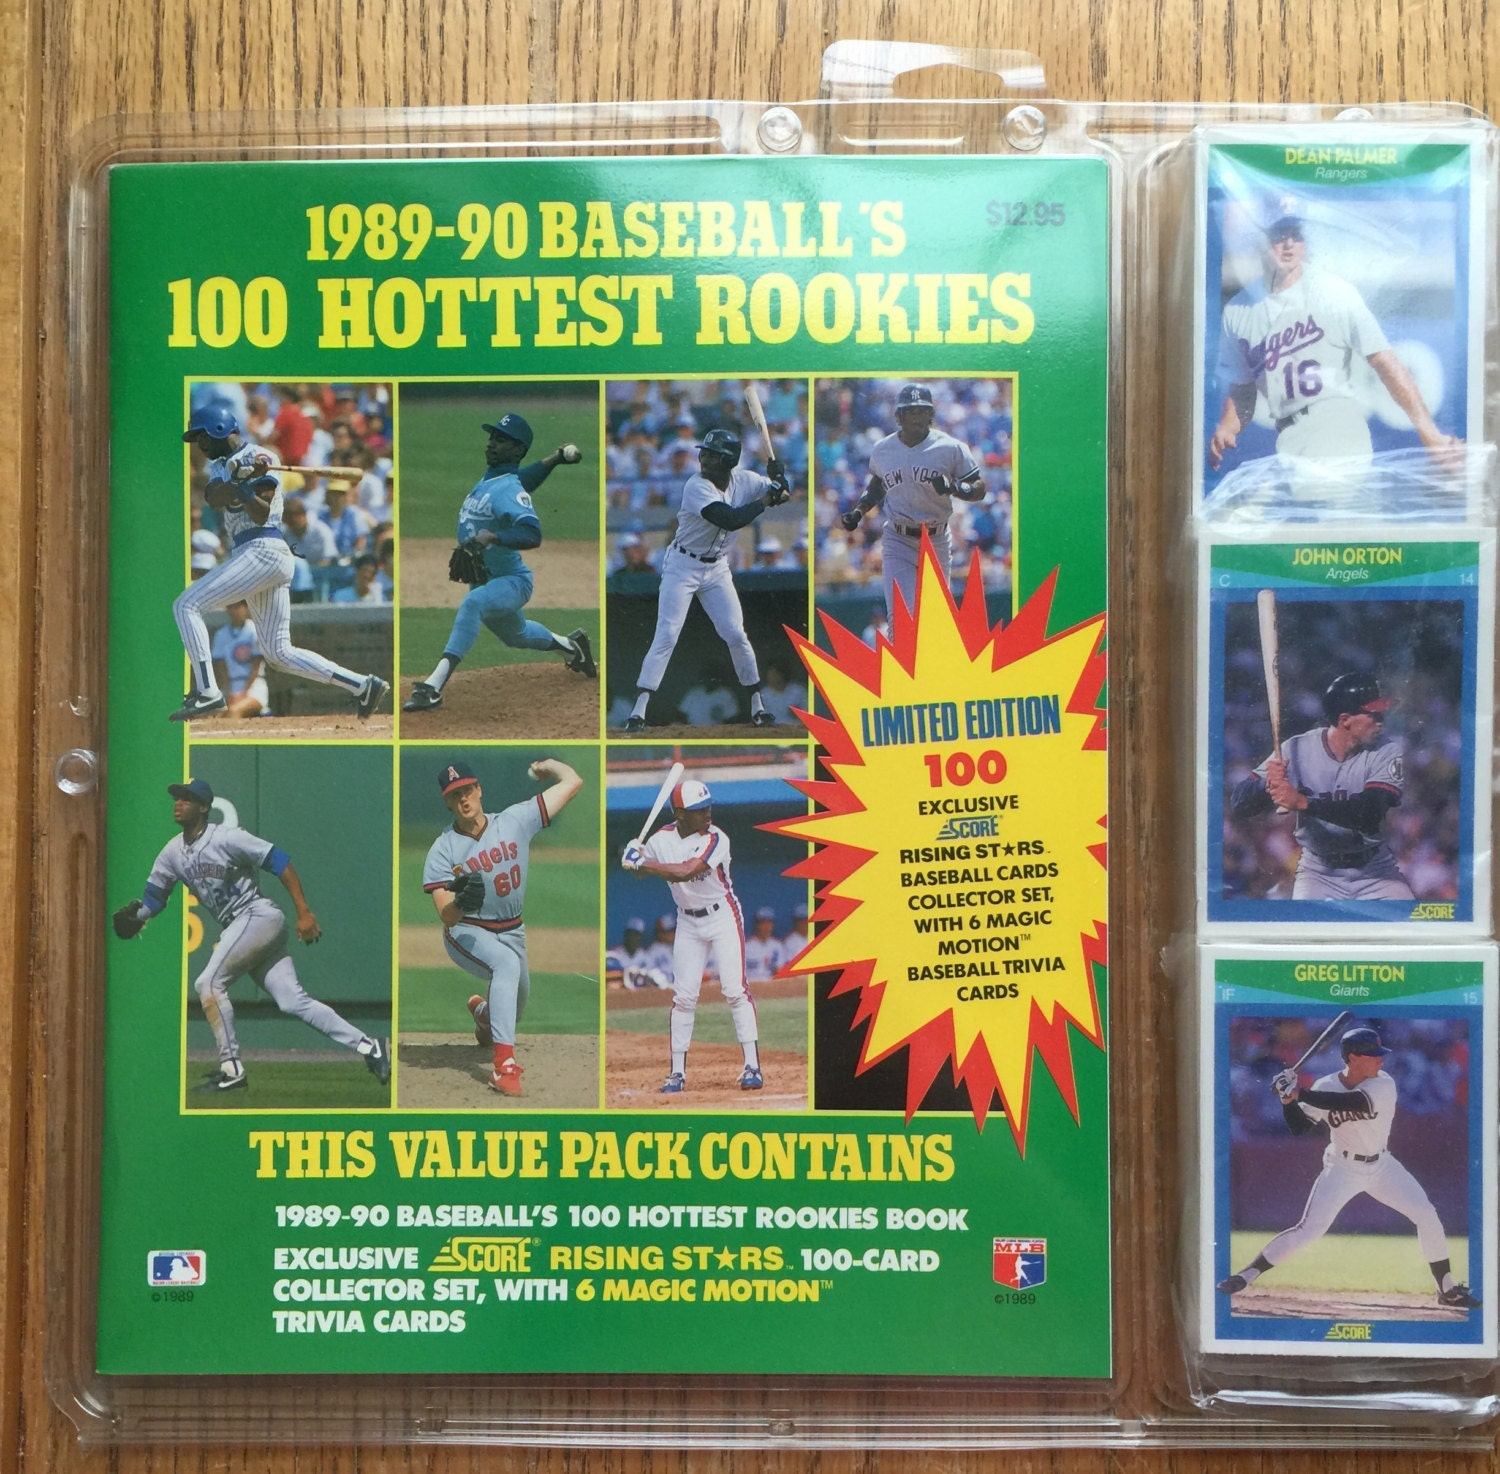 1989-90 Baseball's 100 Hottest Rookies Value Pack Score